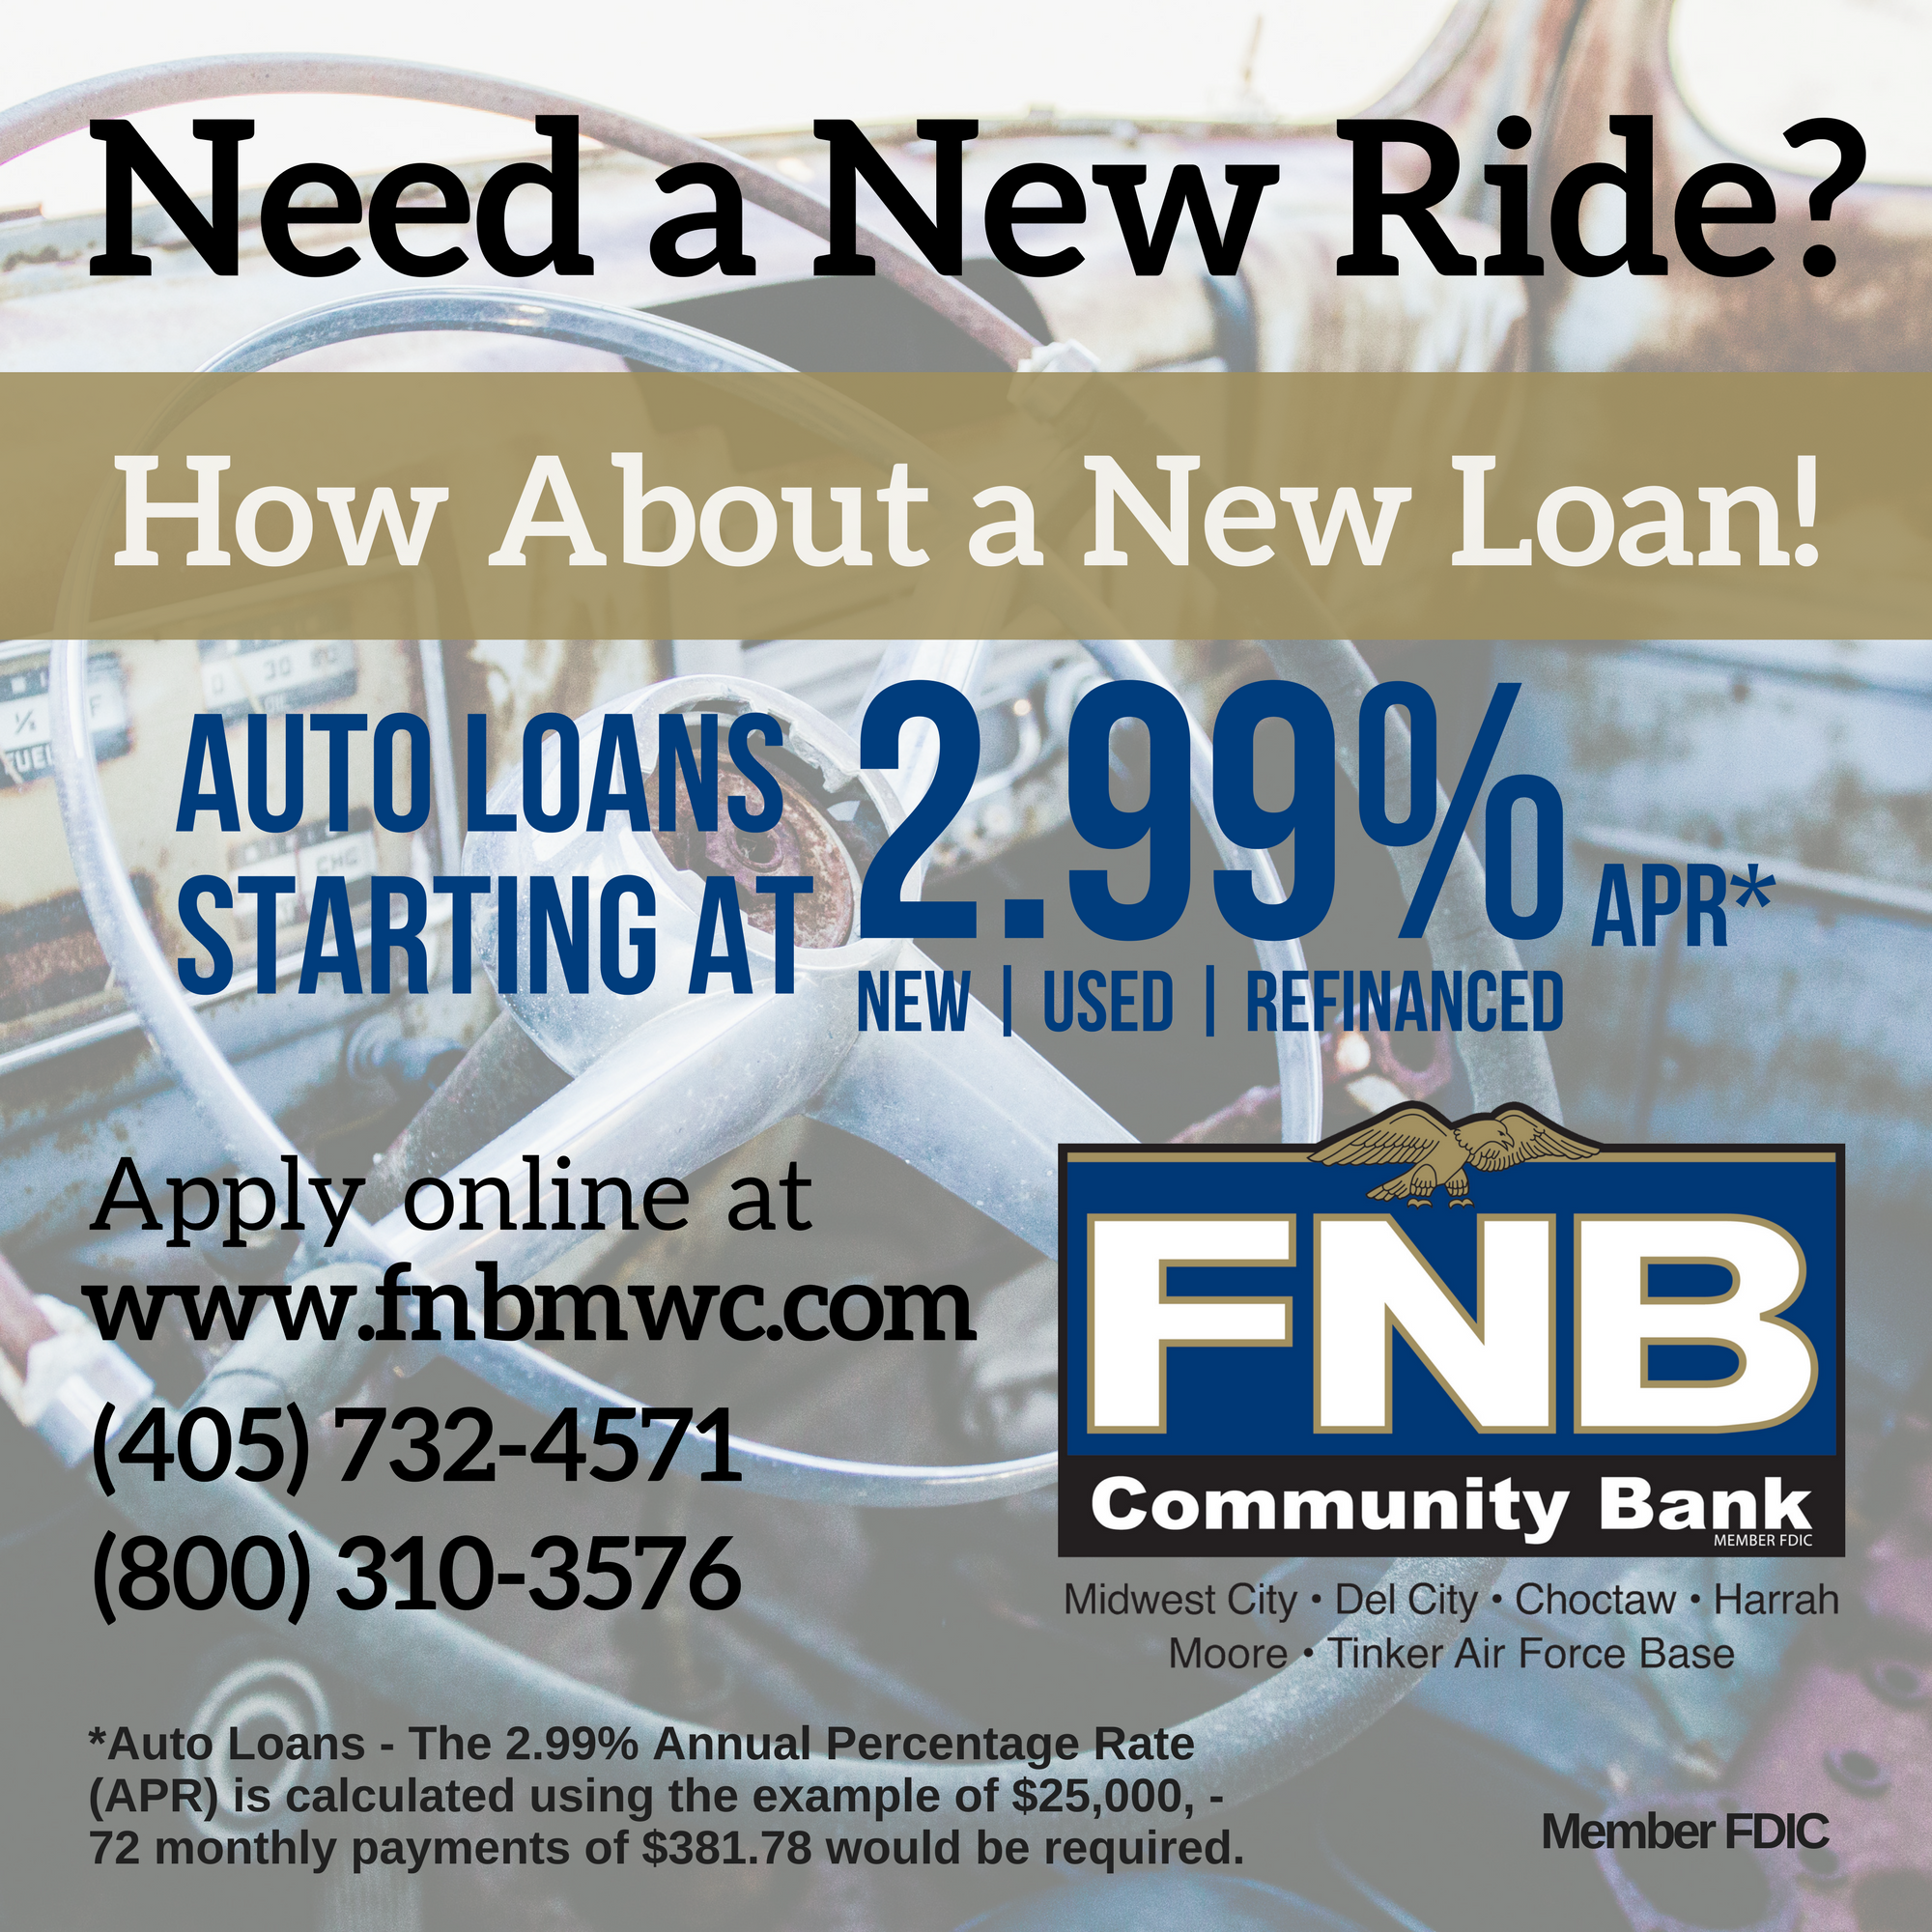 Have You Had Your Eye On A New Or New To You Car Take Advantage Of Our Low Loan Rate Of 2 99 Apr Today Apply Online Apply Online How To Apply Midwest City